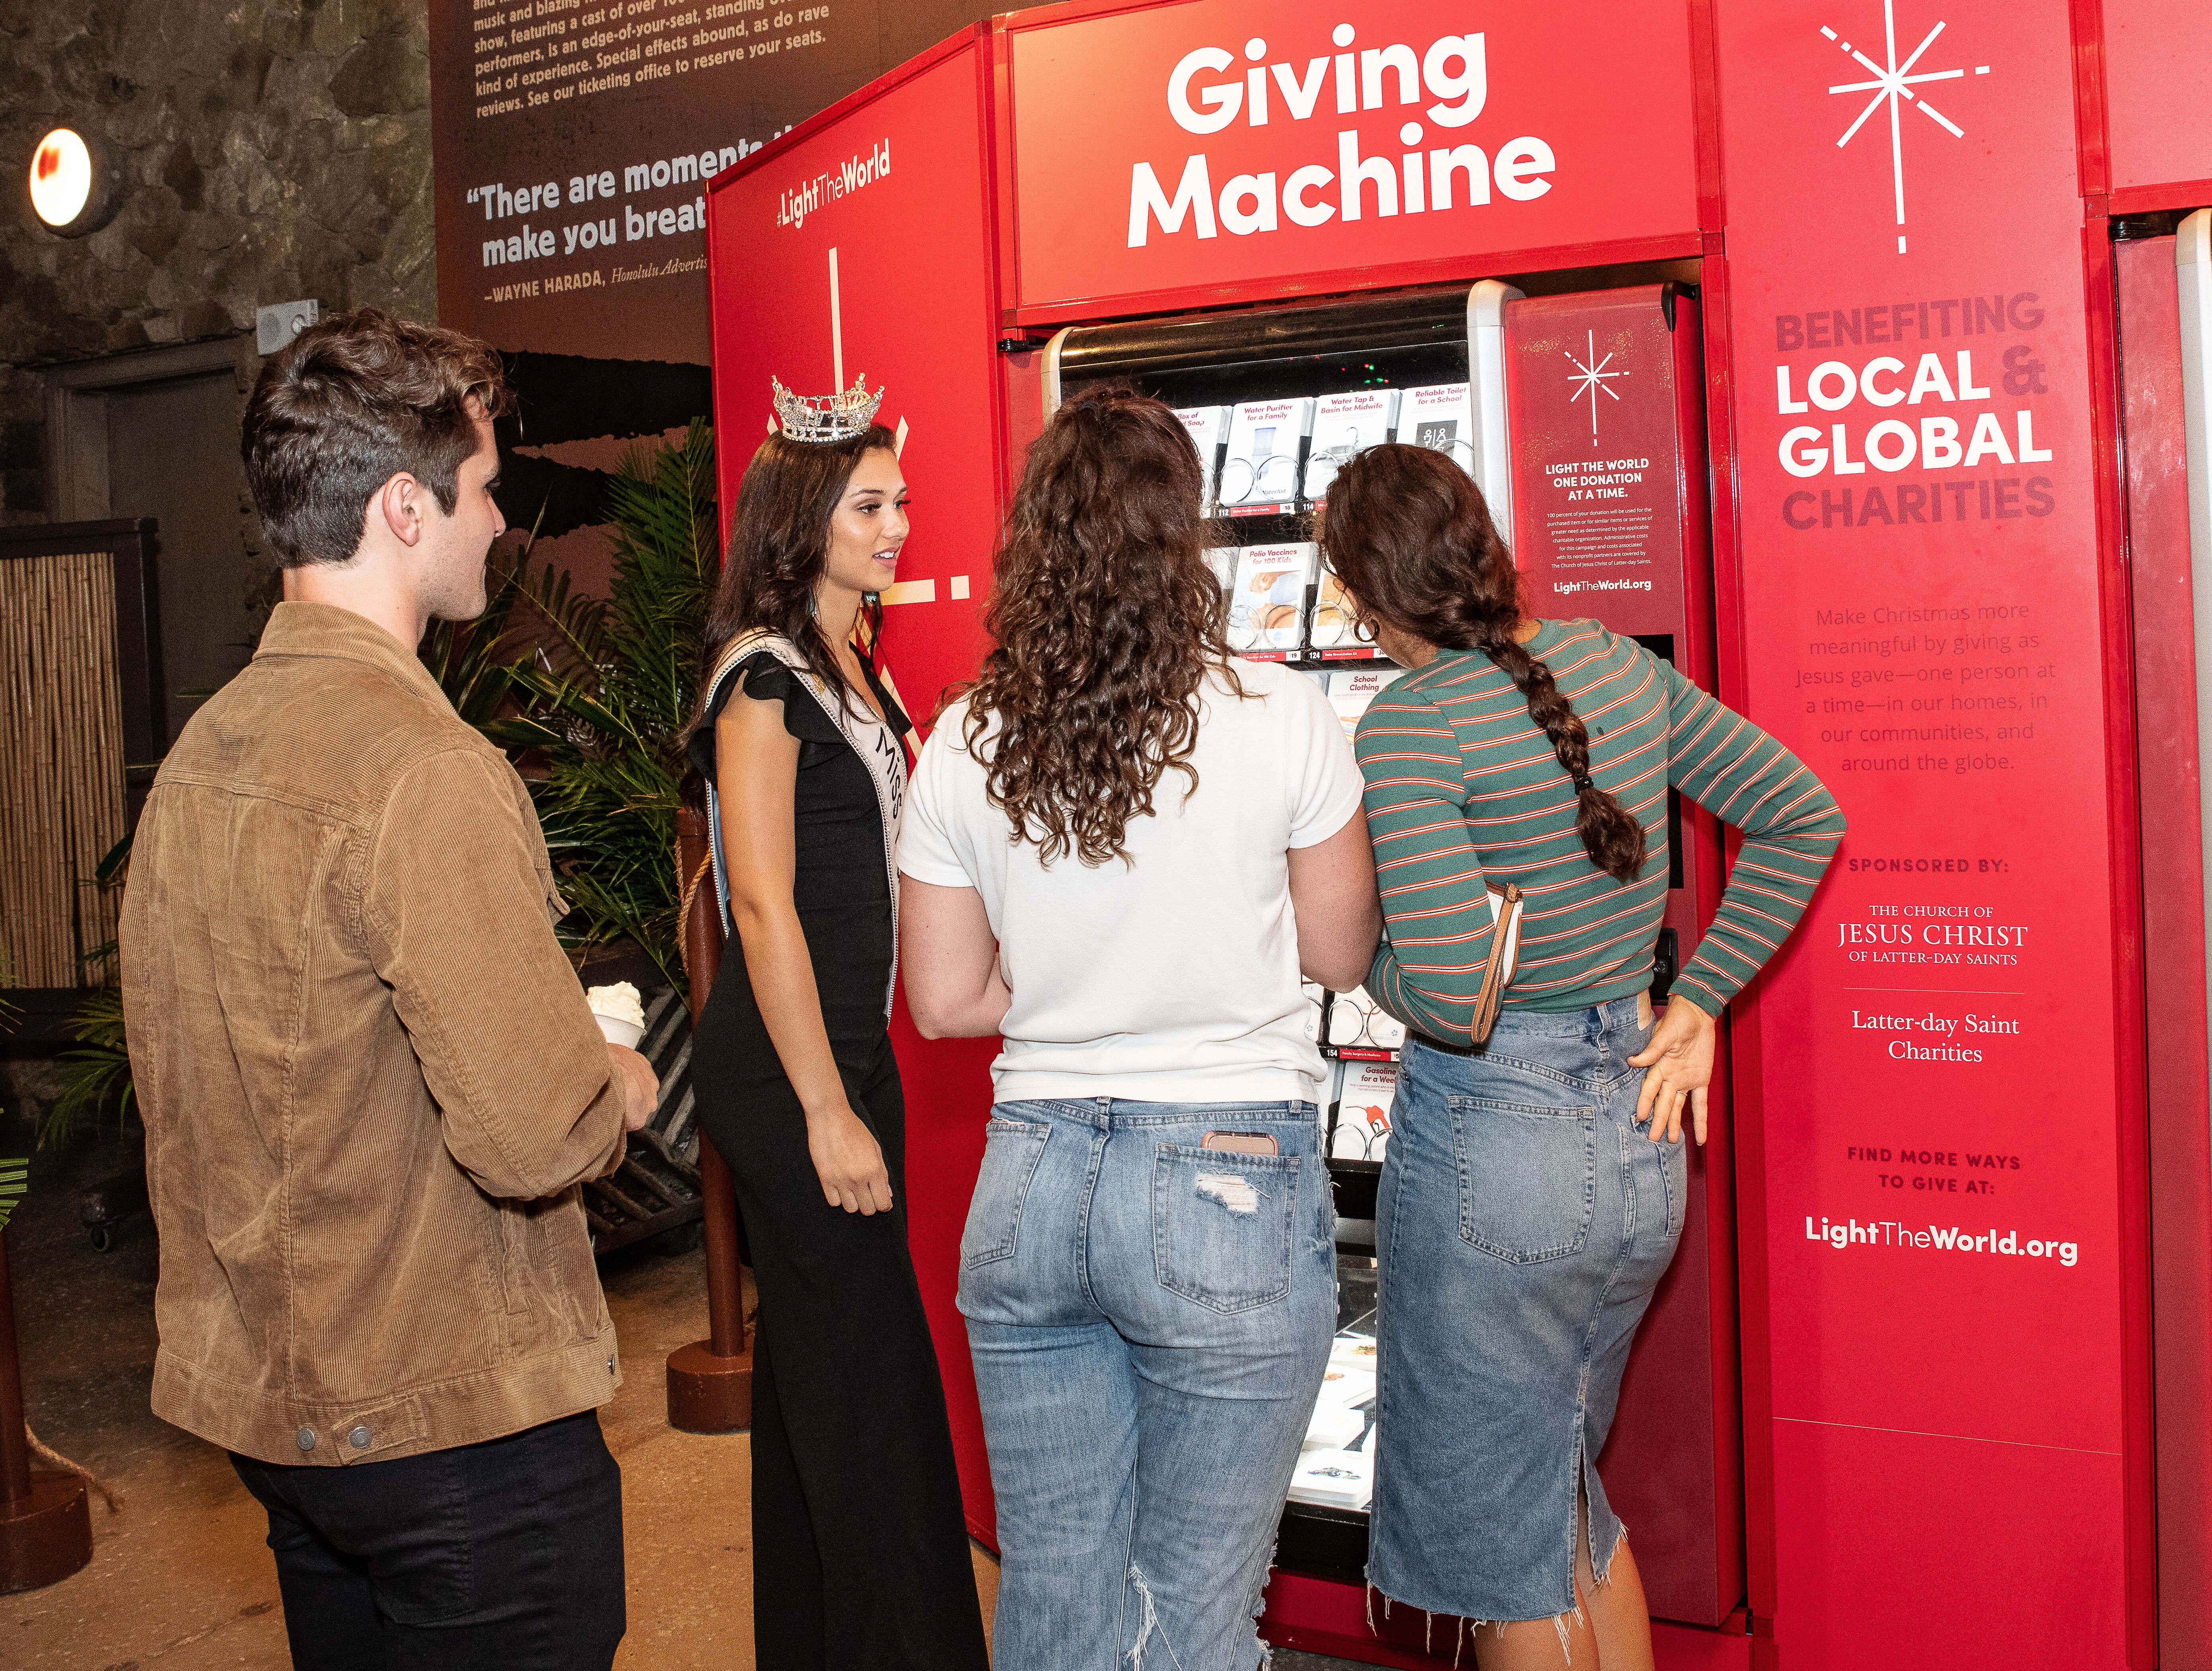 Photo of Miss Hawaii, Nikki Holbrook, helping 3 visitors to place their donation order at the Giving Machine